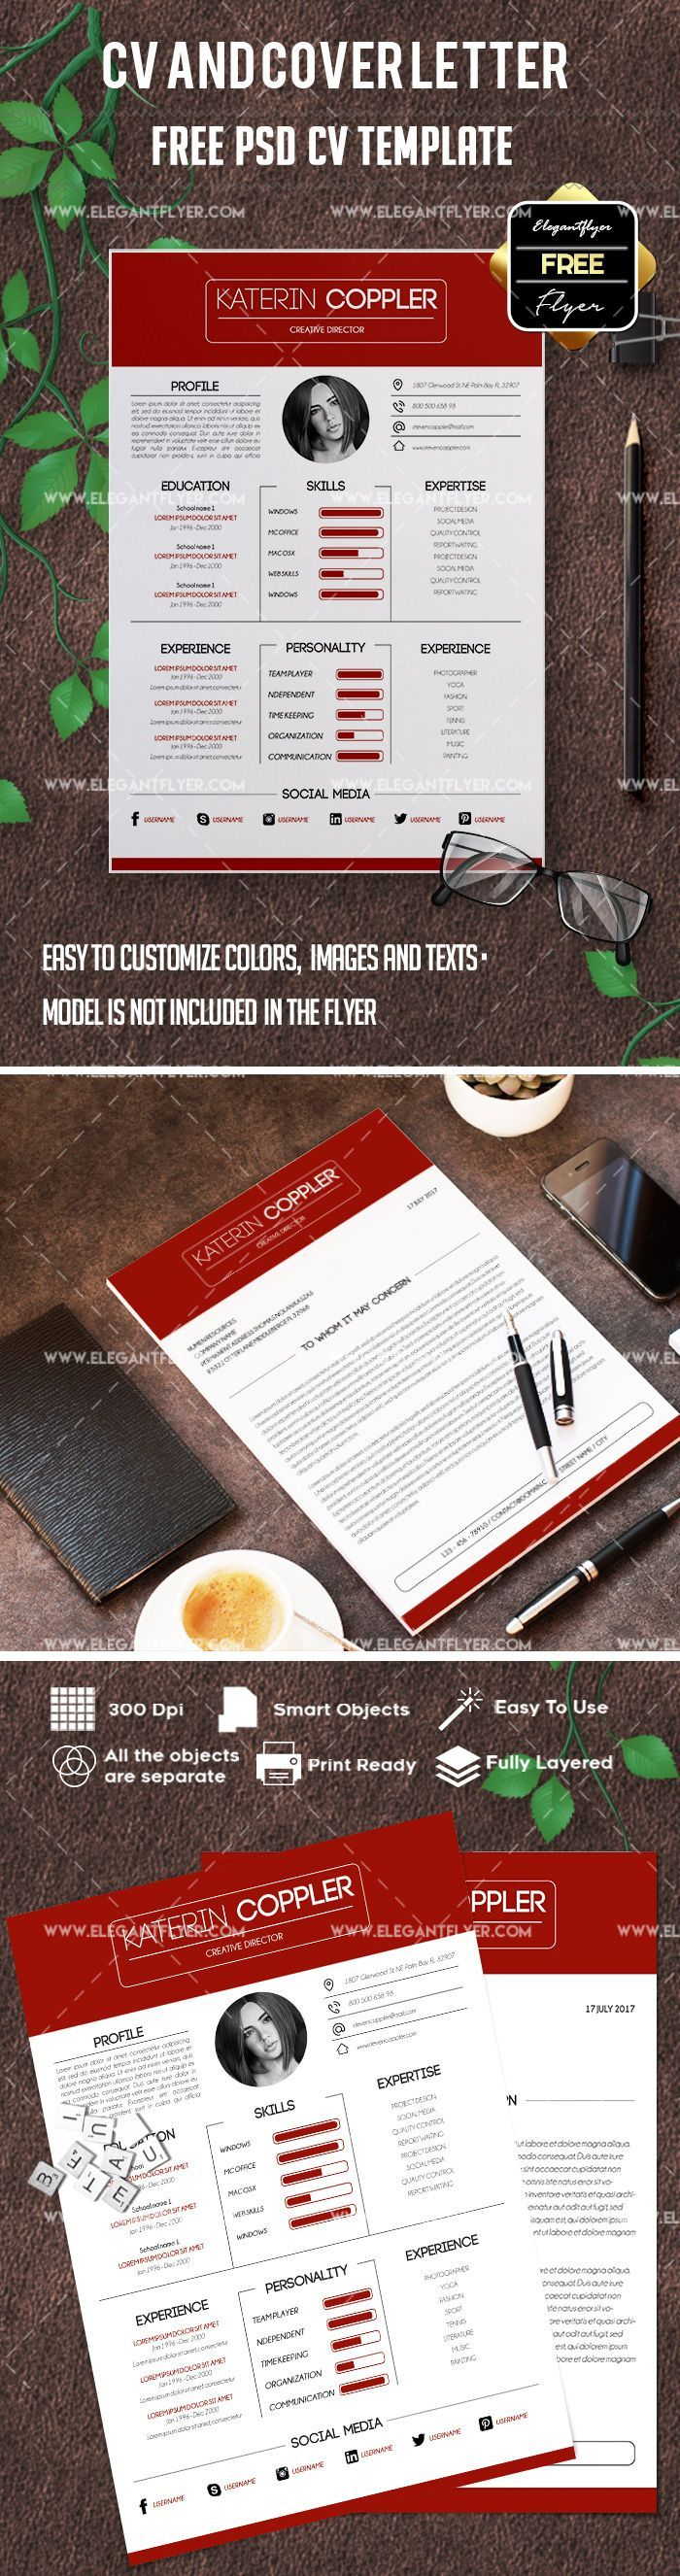 bartender job description resume%0A https   www elegantflyer com freeresumetemplates